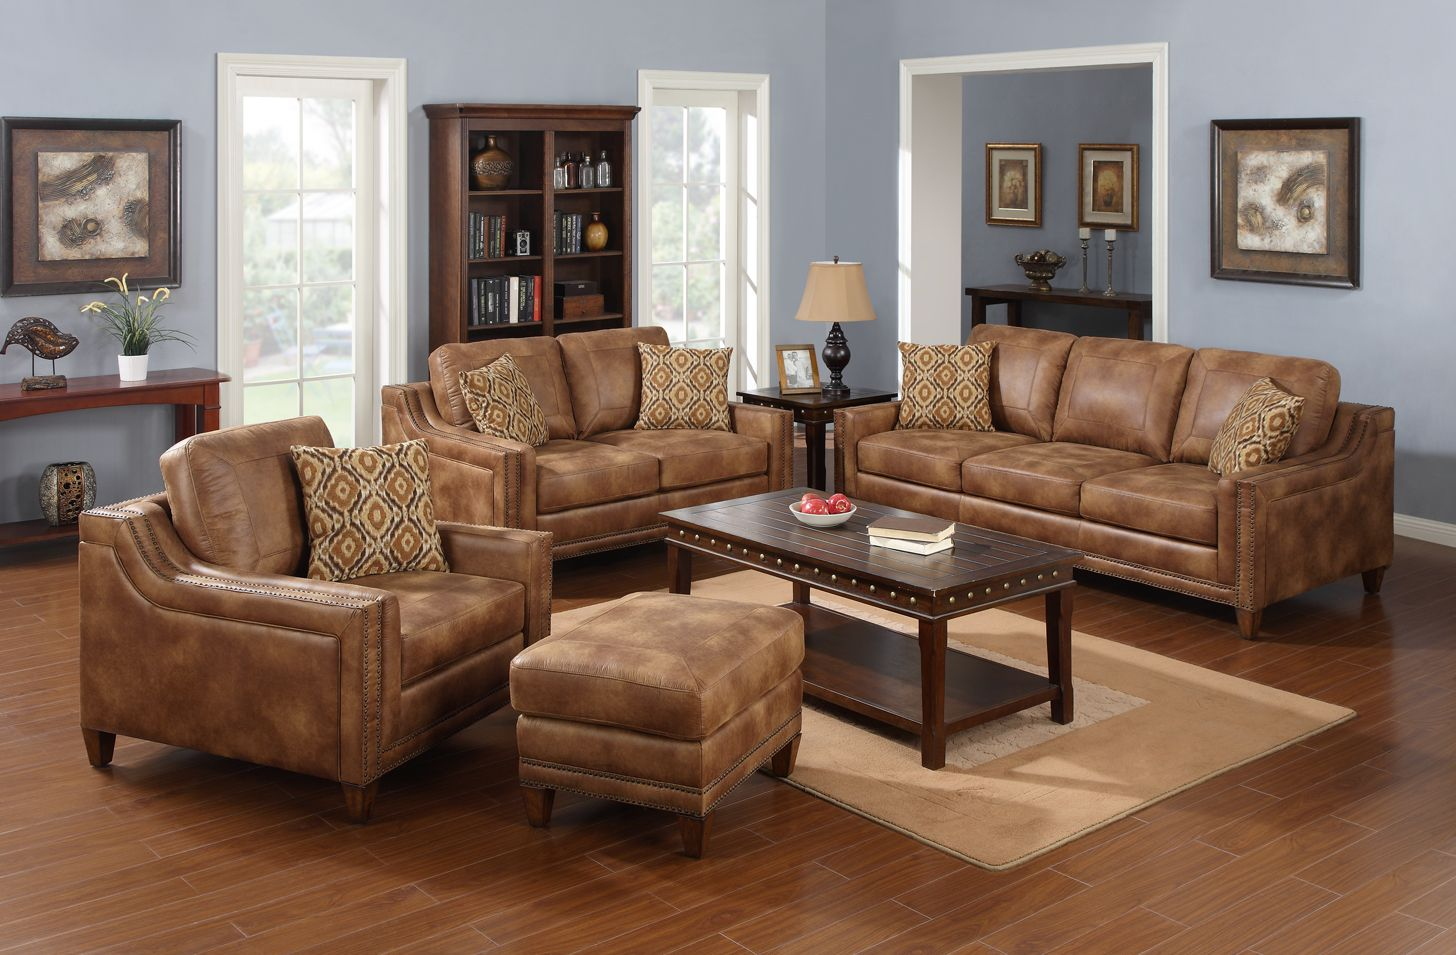 Pin By Ideal Furniture Aberdeen On Kozy Living Full Line Of Living Room Furniture Furniture Living Room Furniture Home Decor